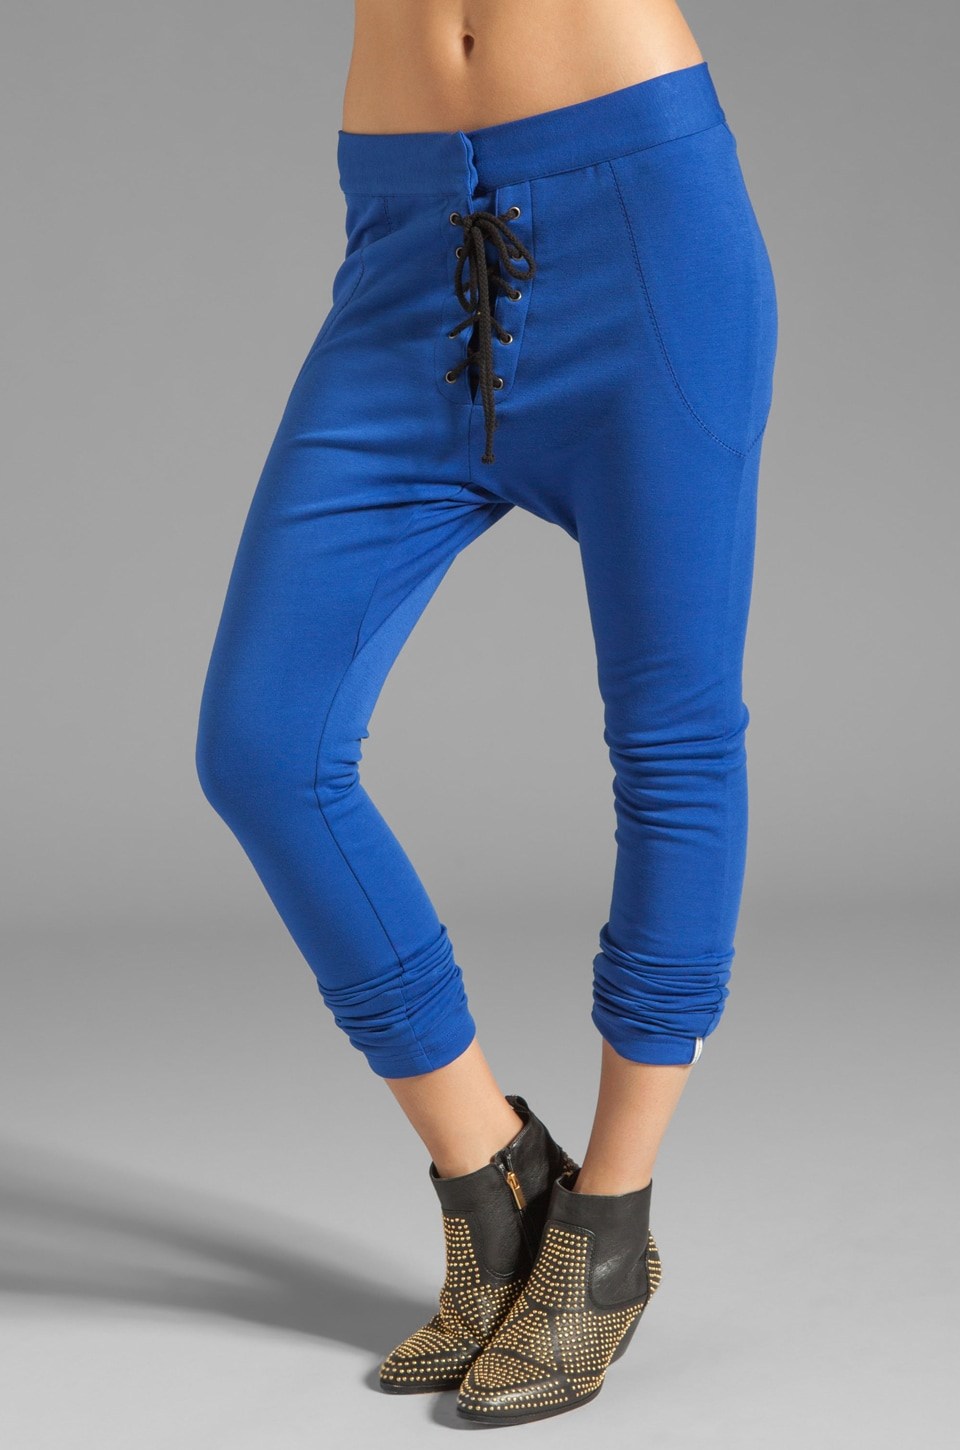 One Teaspoon Midnight Rambler Jagger Pant in Electric